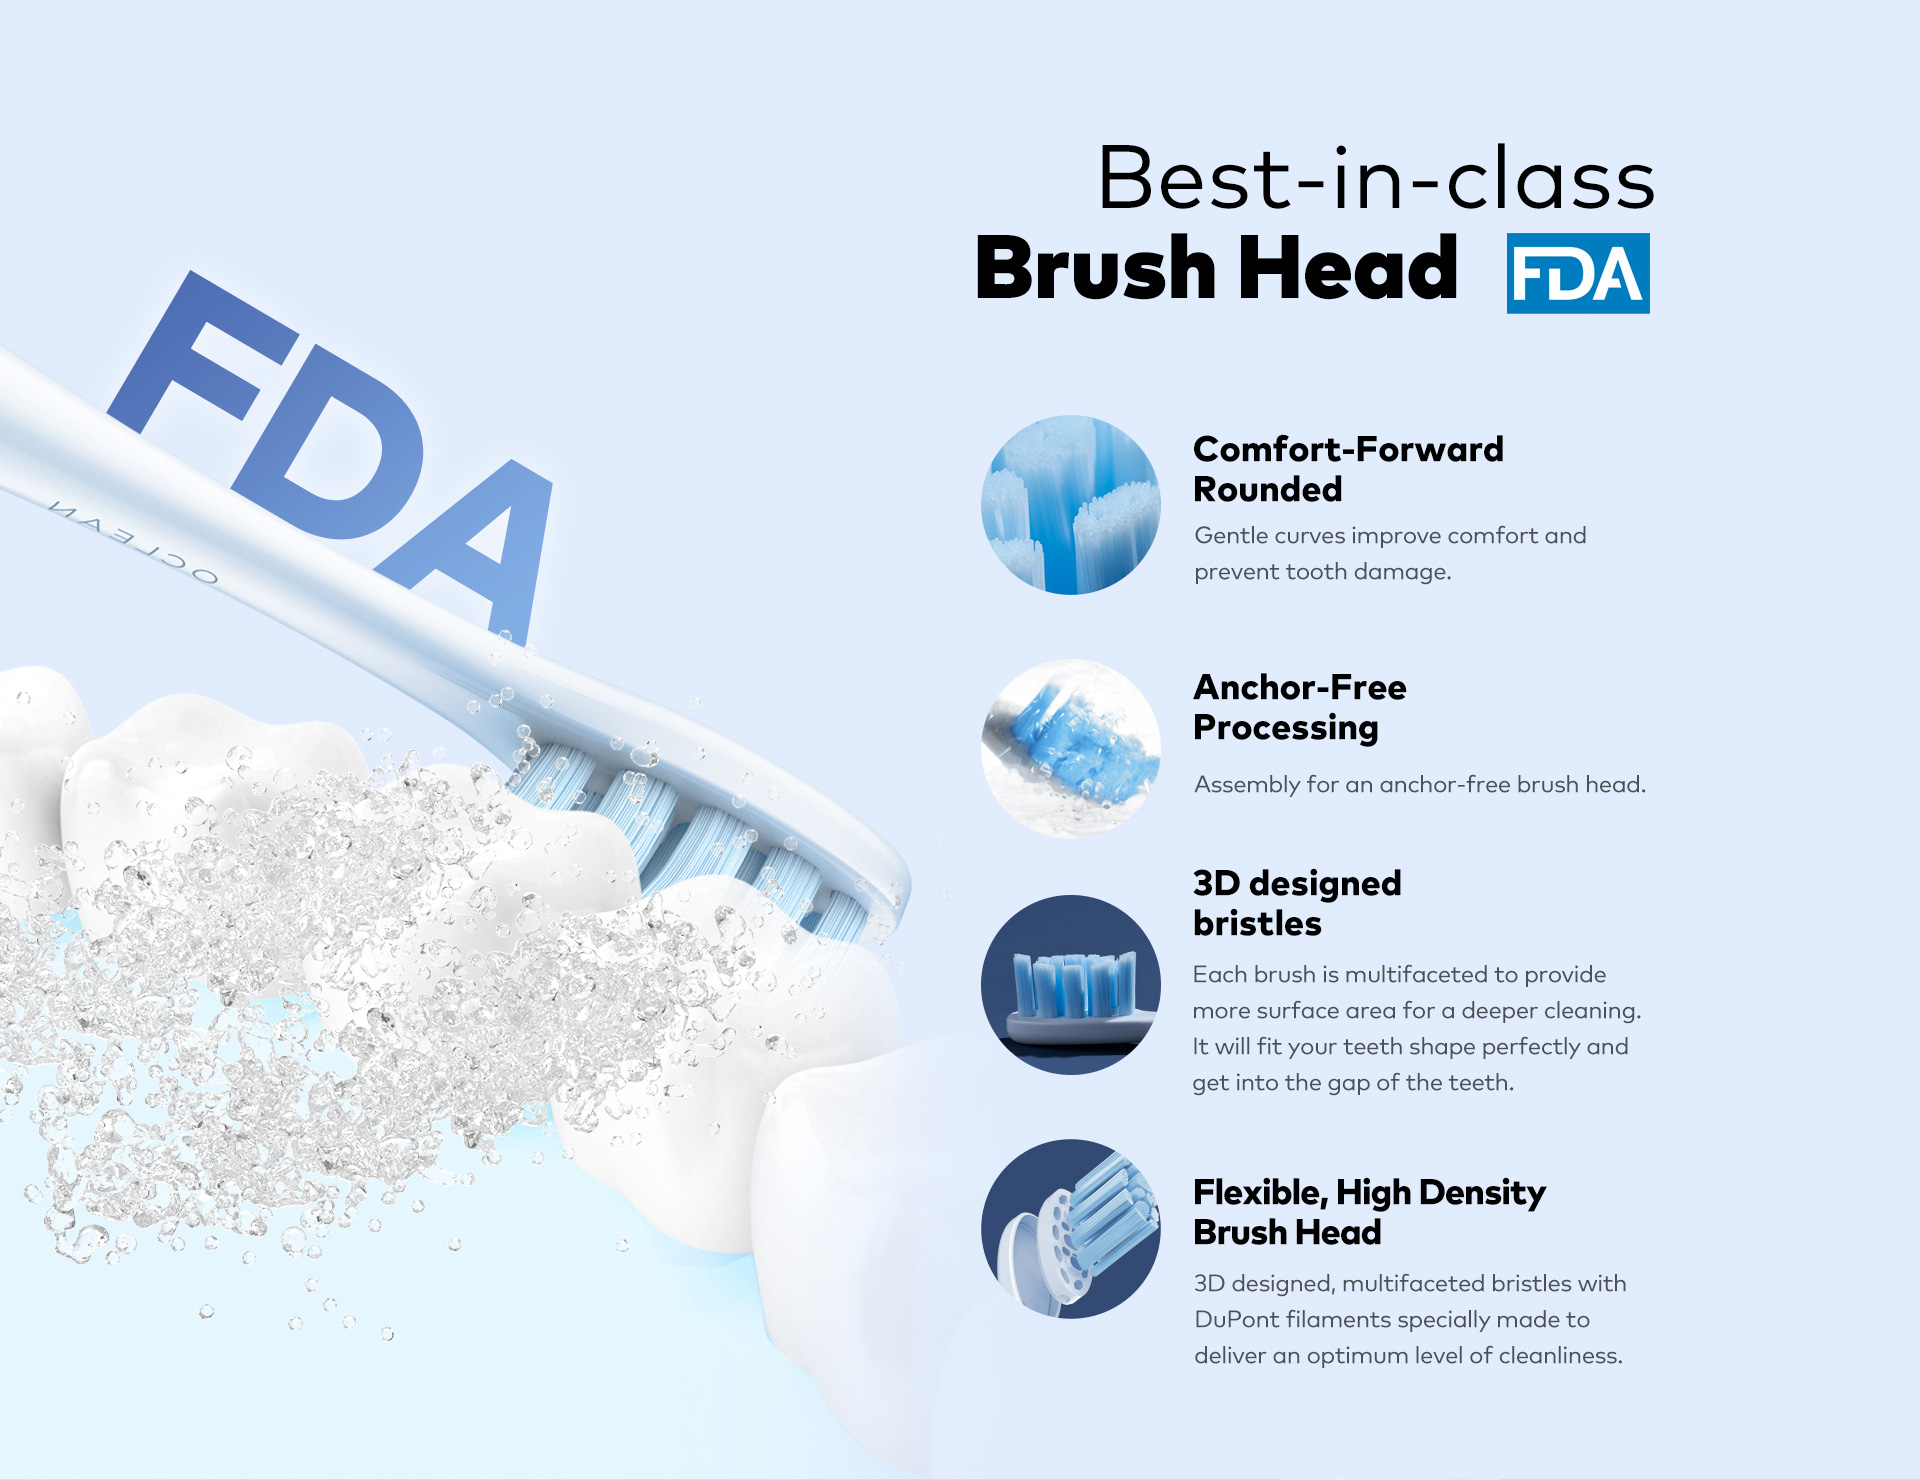 comfort forward rounded anchor-free processing 3D designed bristles